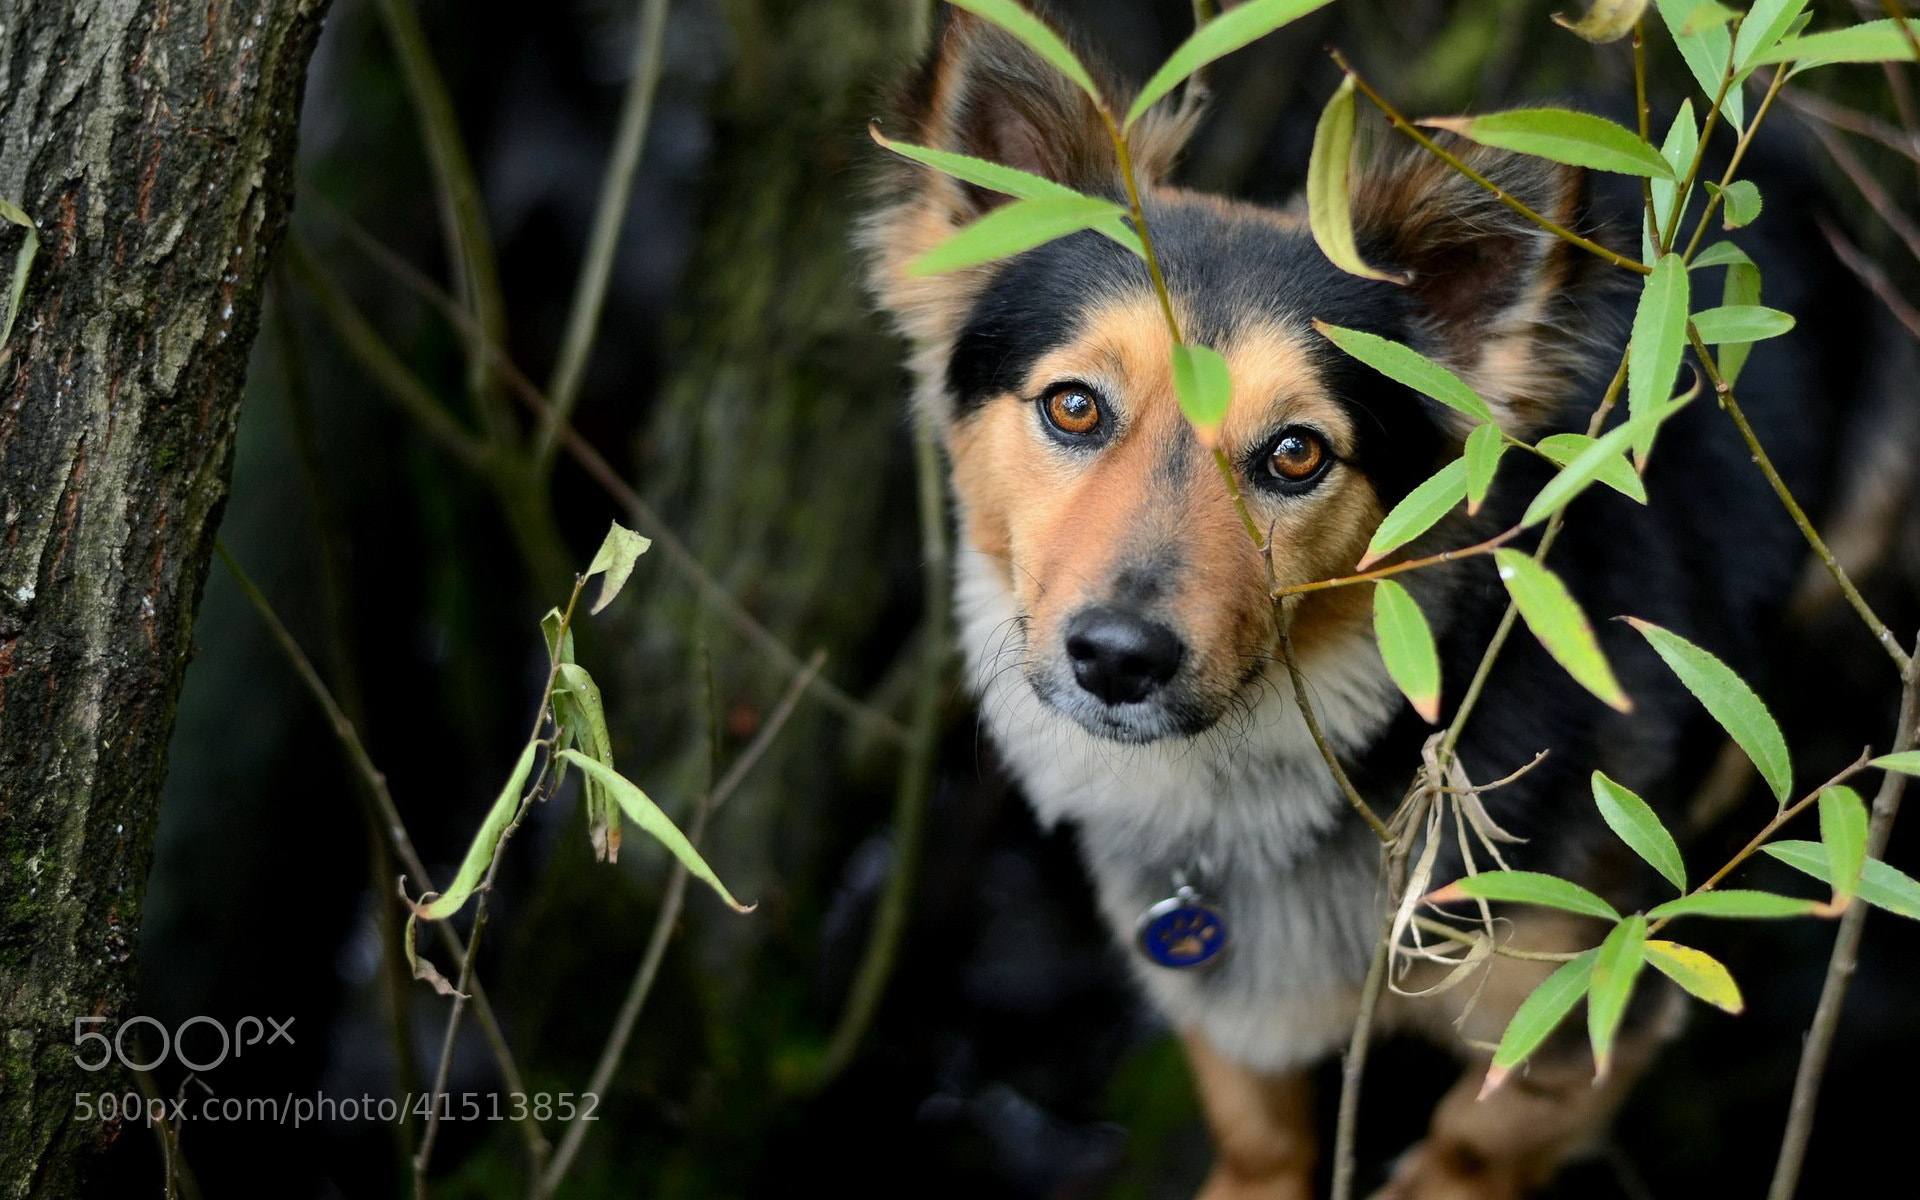 Photograph Dog by Alexandr Churbakov on 500px